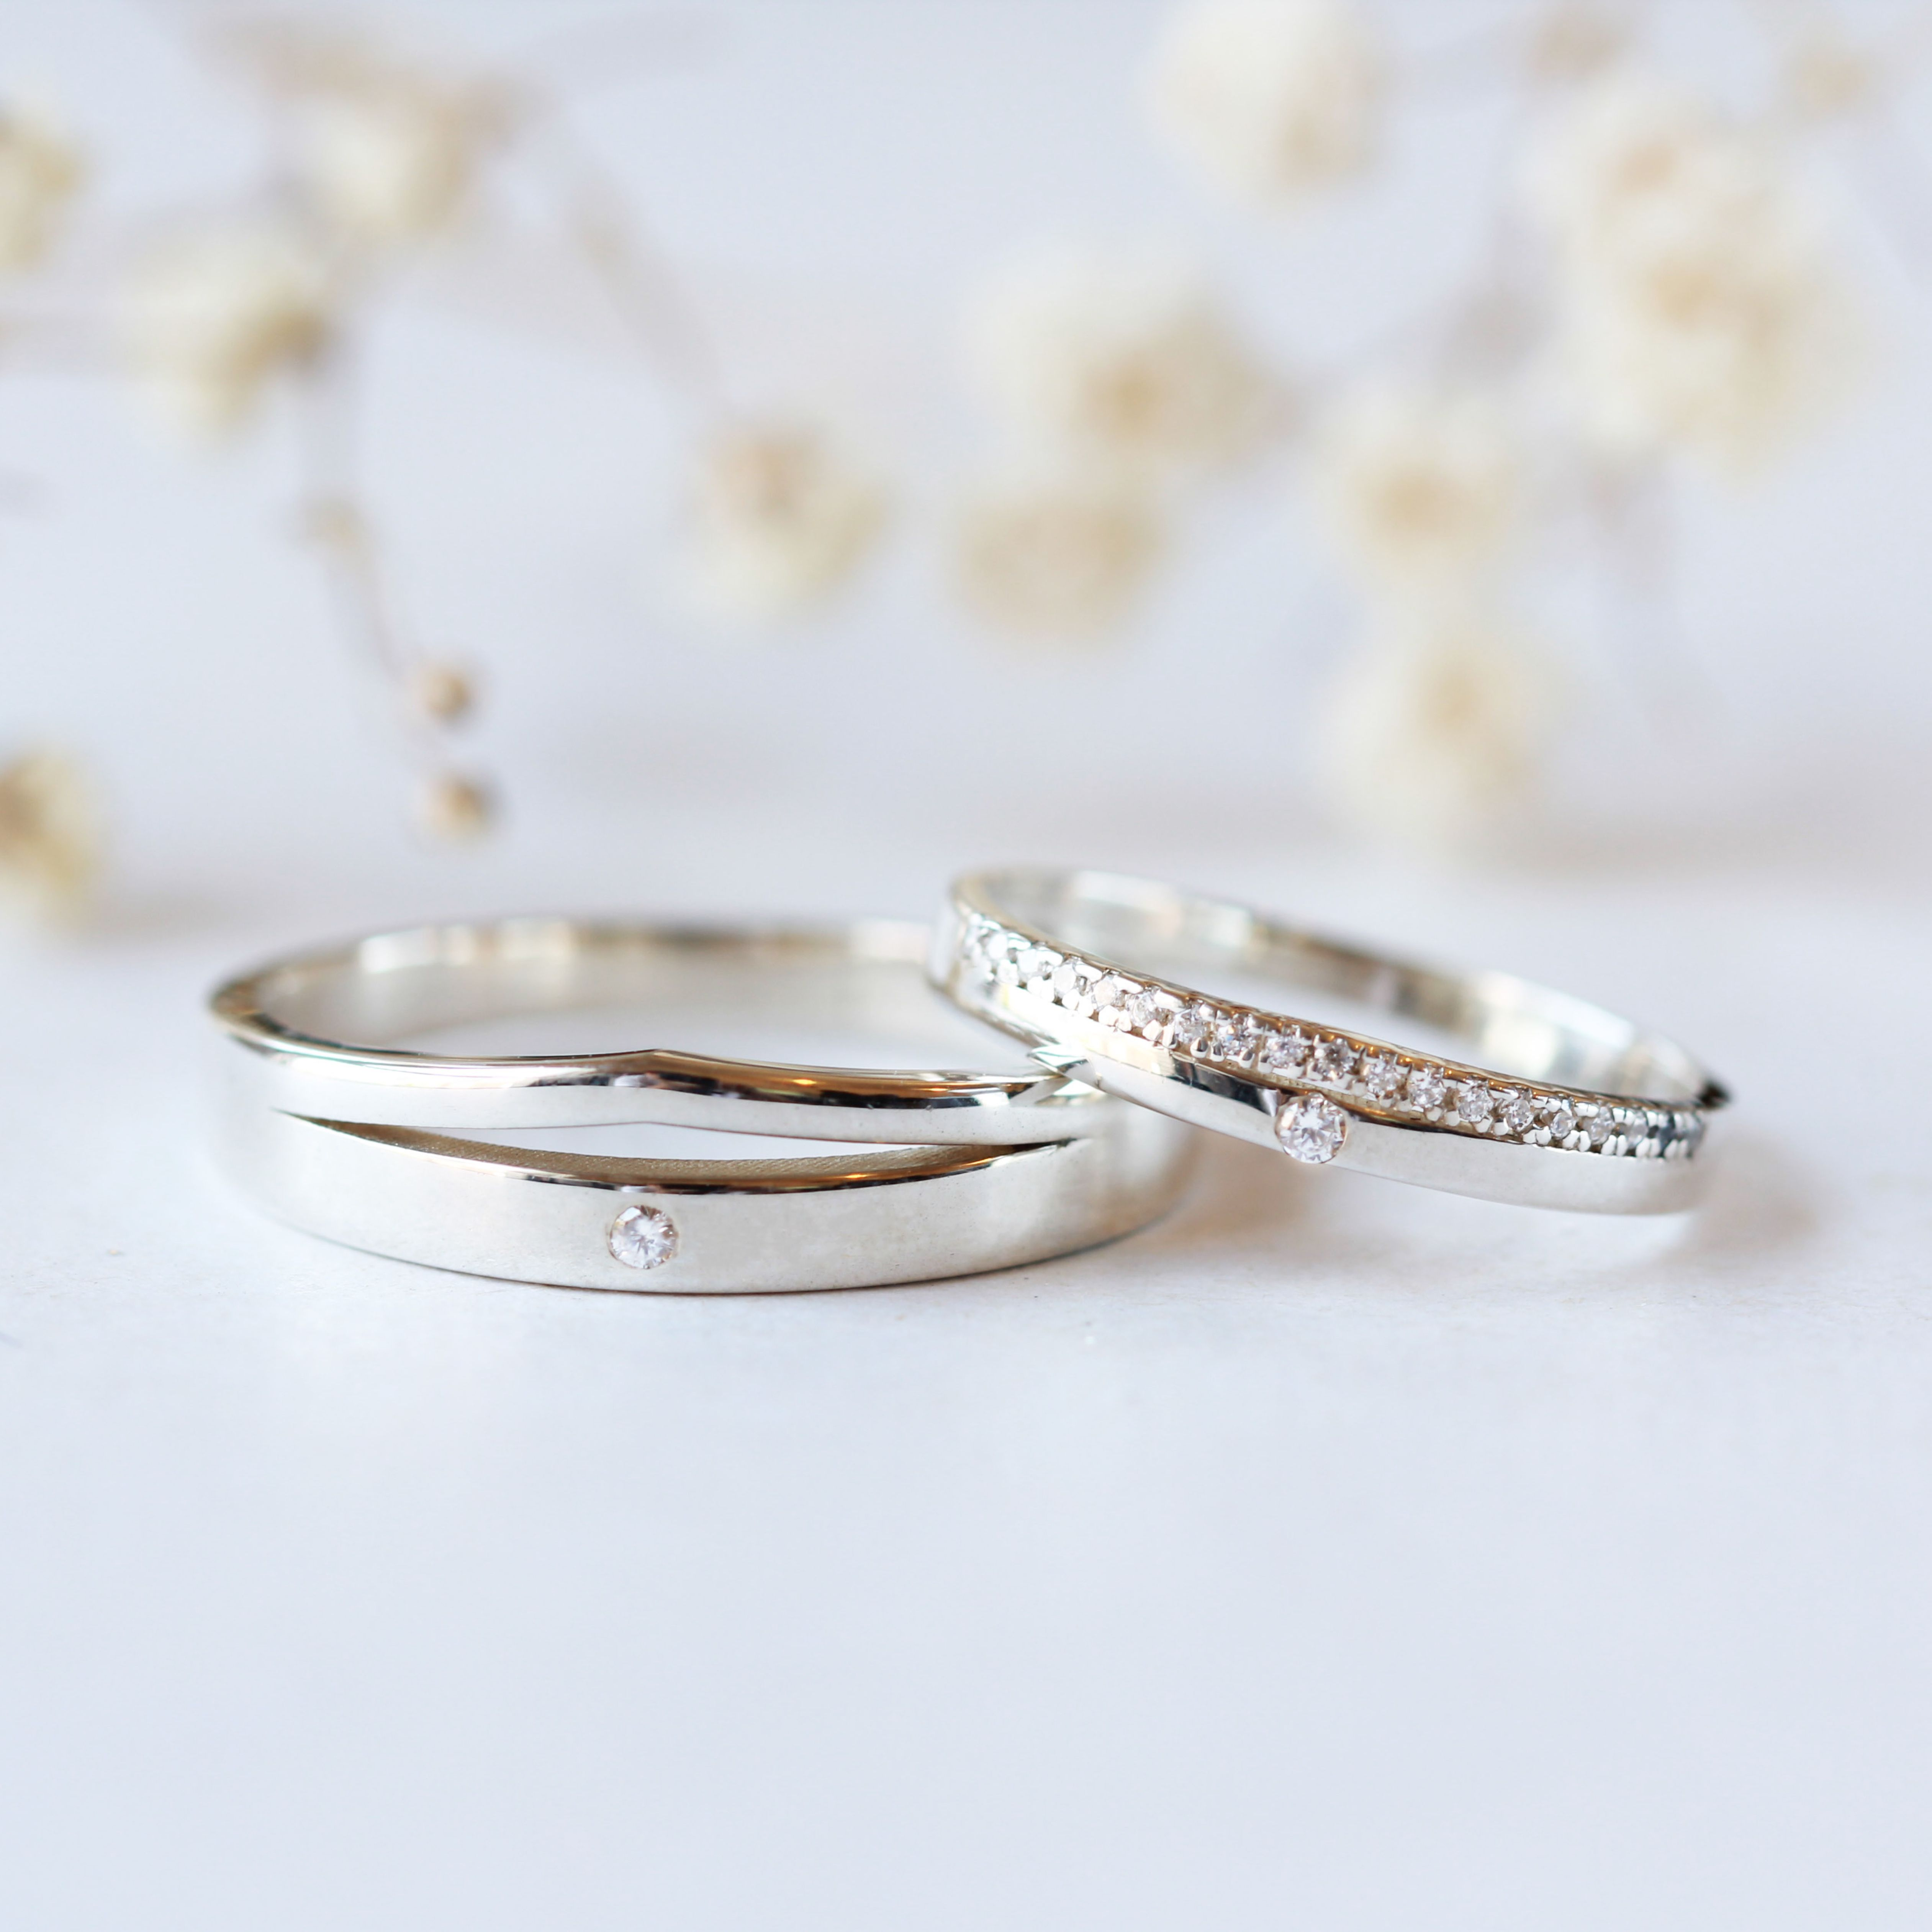 Wedding Band His And Hers Couple Rings Engagement Band Etsy In 2020 Couple Wedding Rings Matching Wedding Rings Couple Ring Design